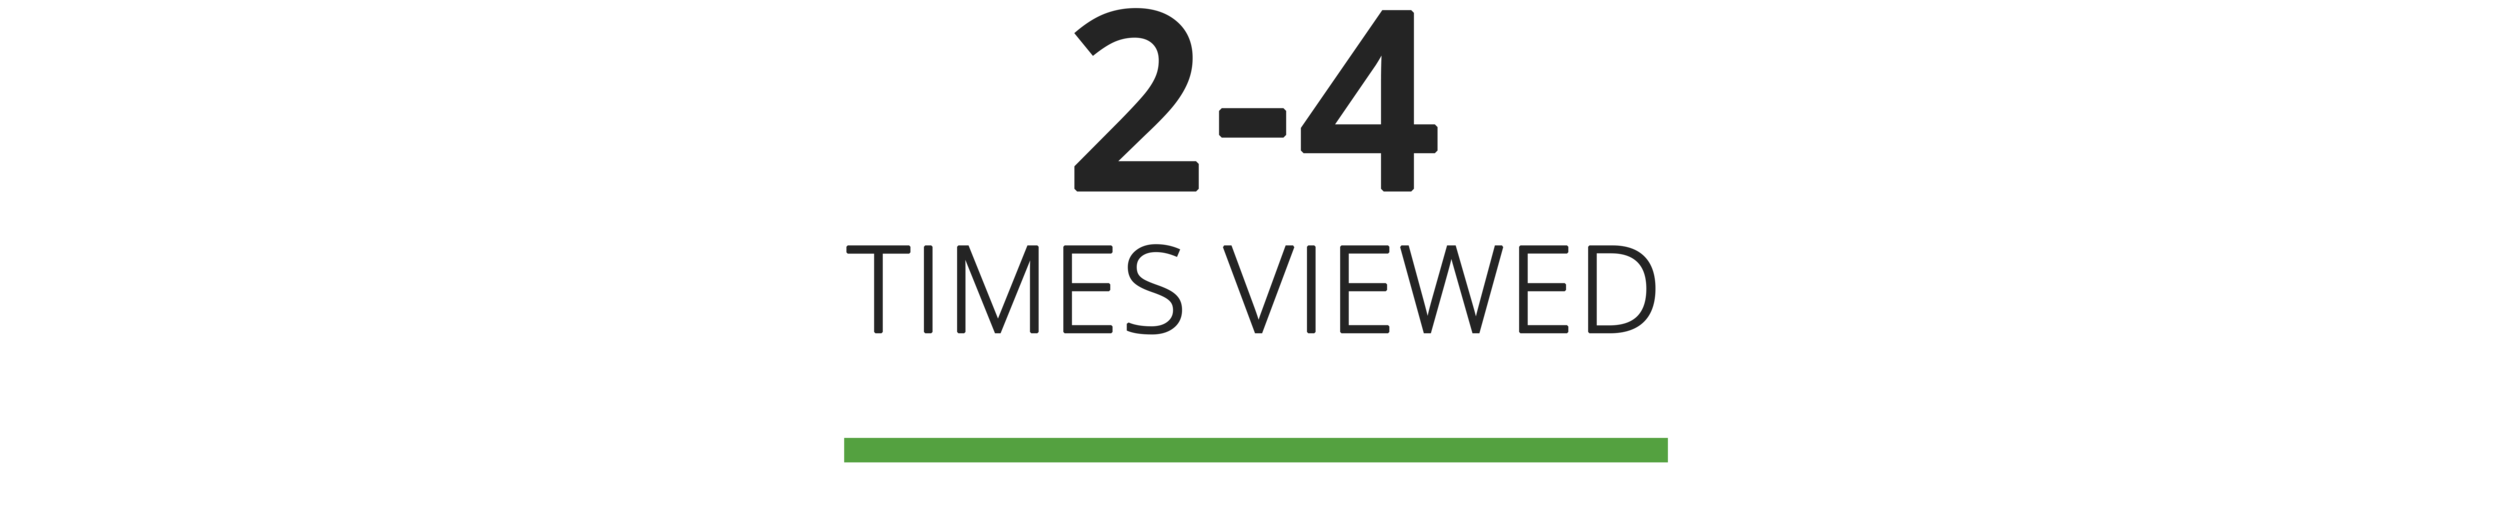 timesviewed 3.png